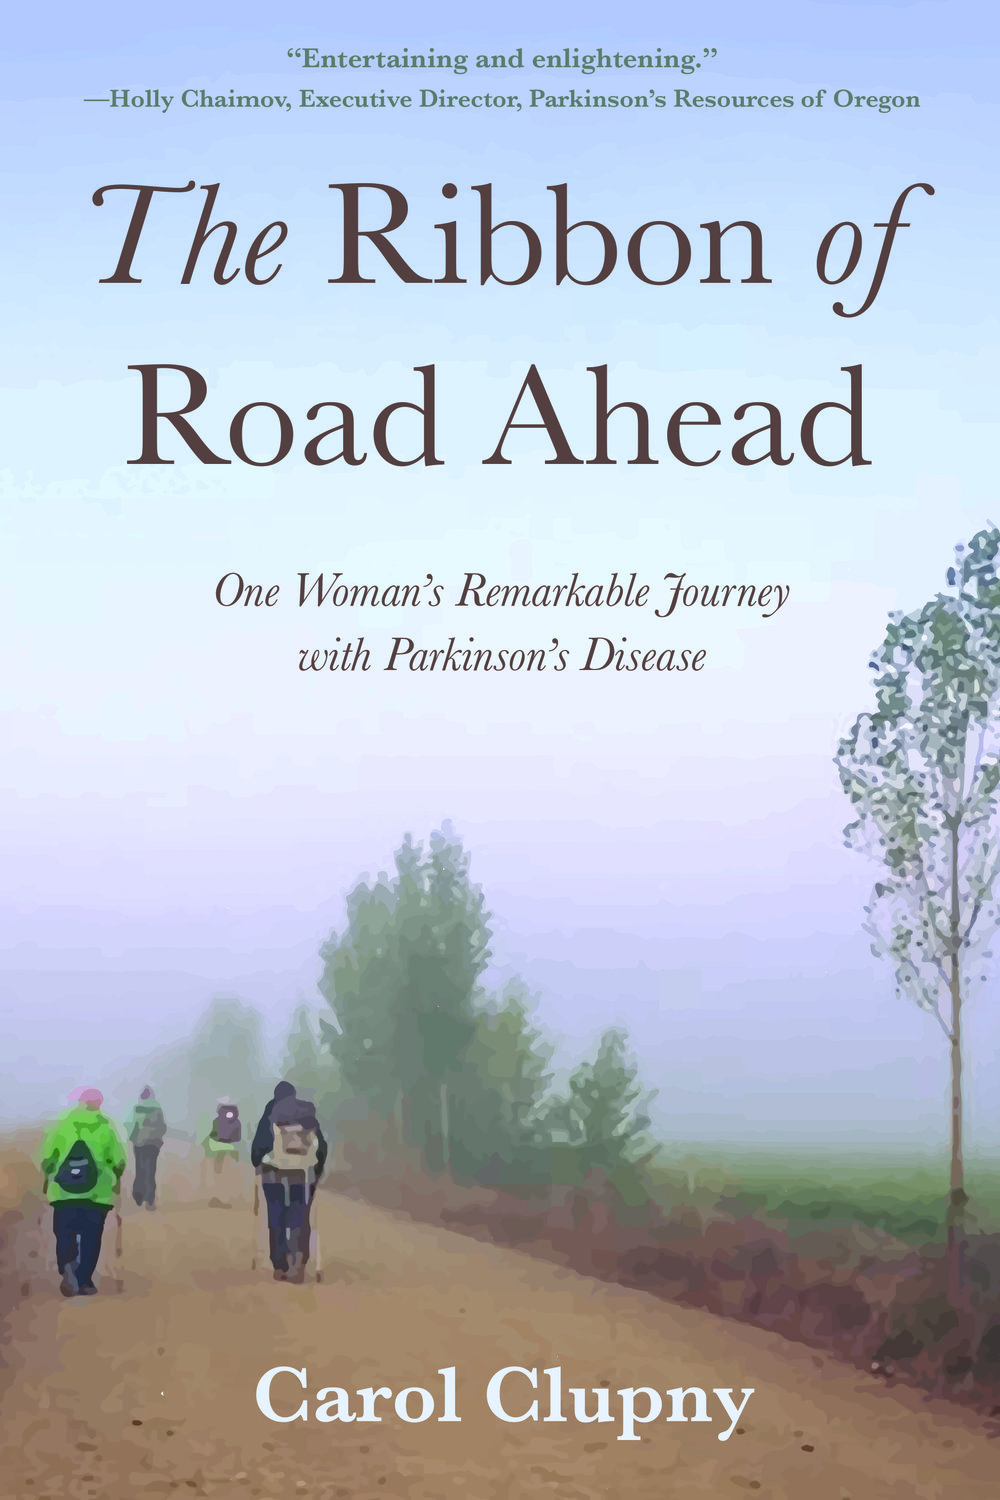 The Ribbon of Road Ahead (Ultreia Books, March 2019)